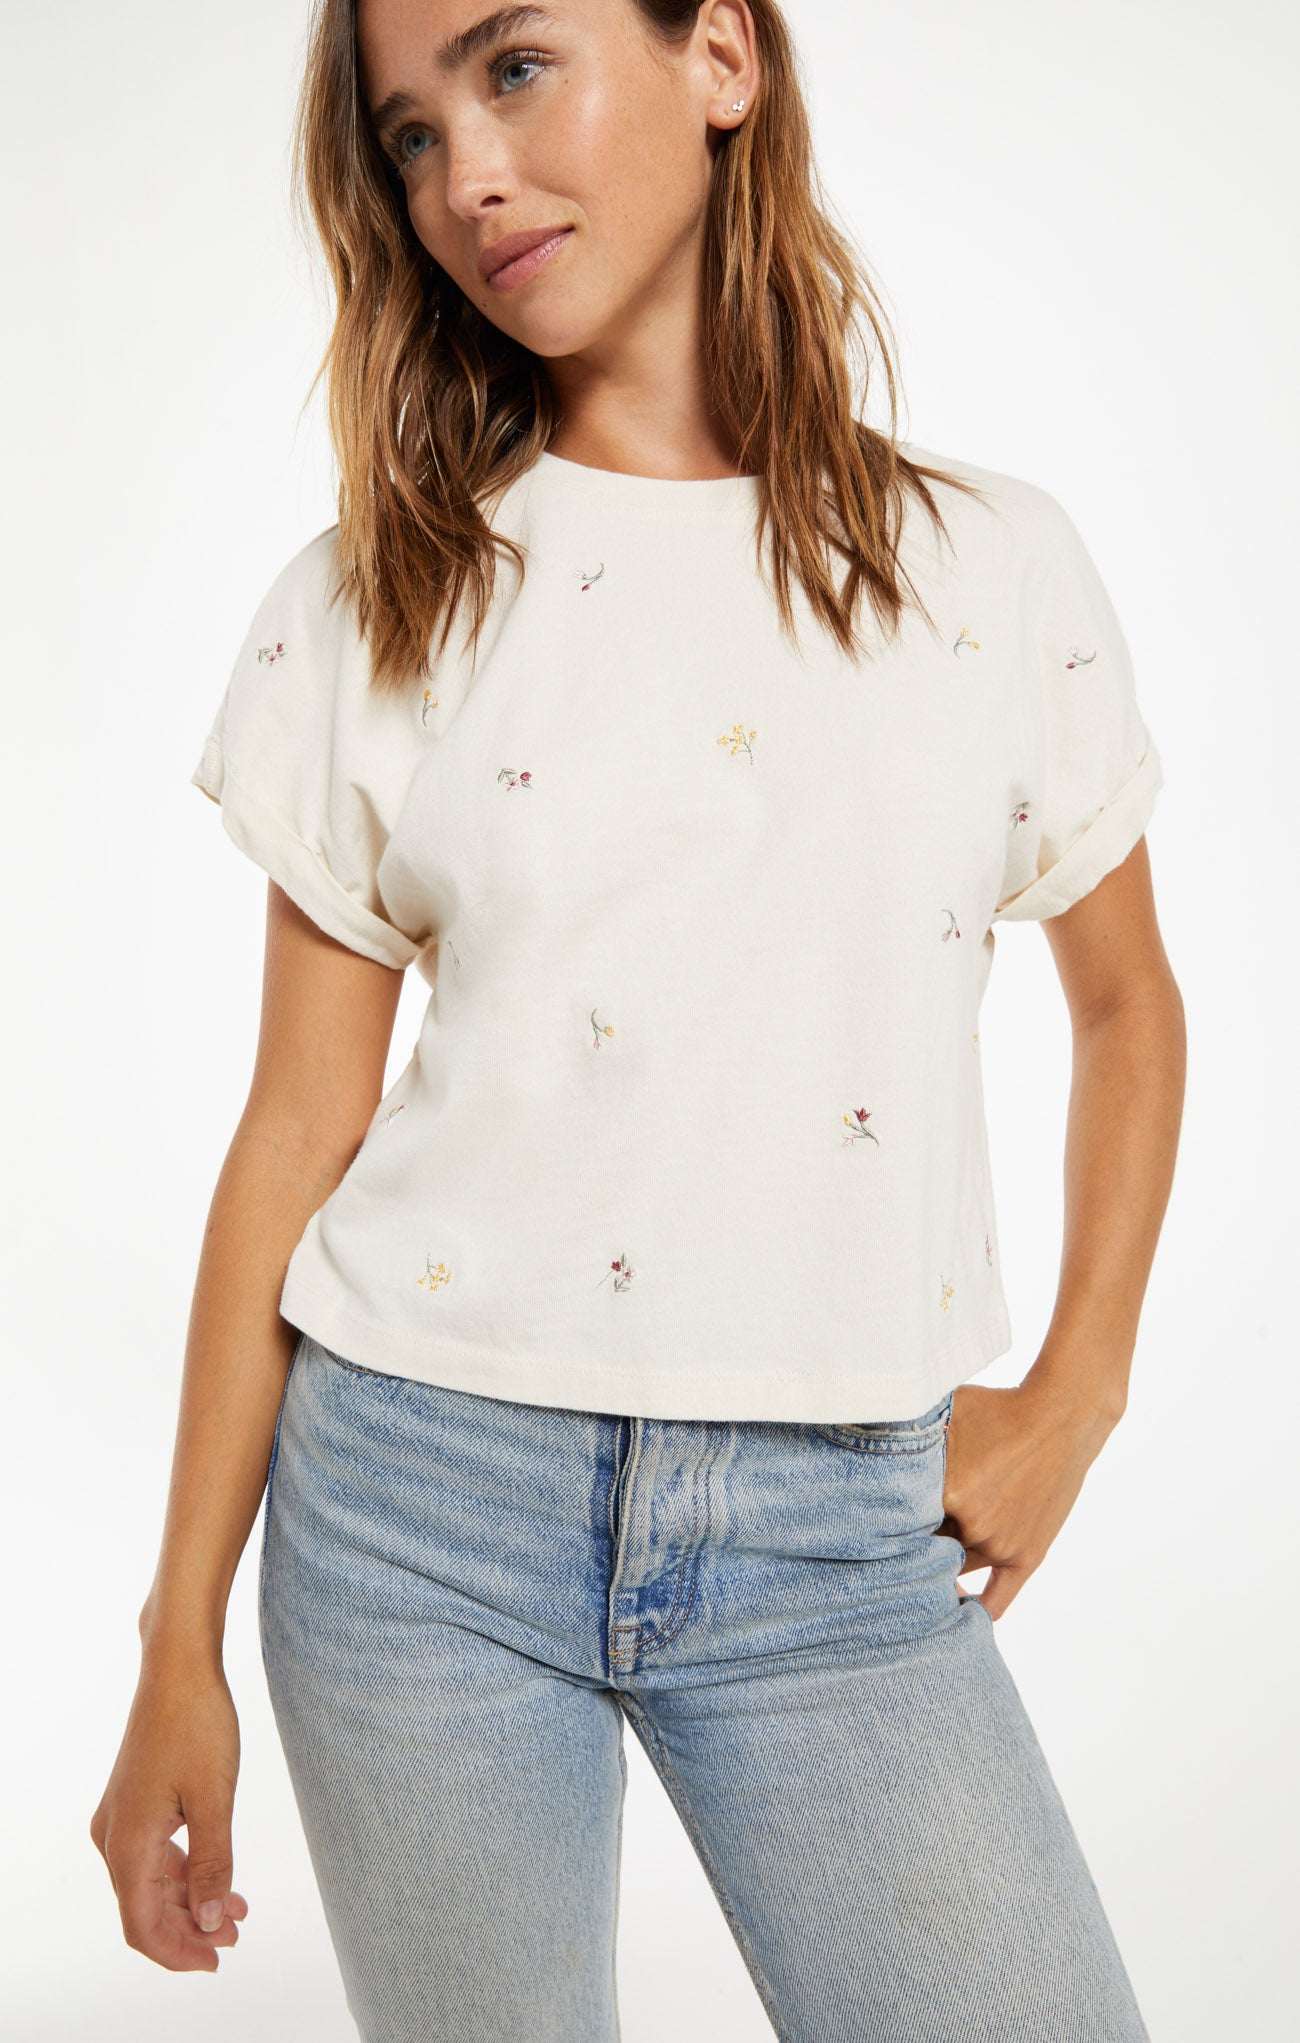 Tops Keely Embroidered Floral Tee Keely Embroidered Floral Tee